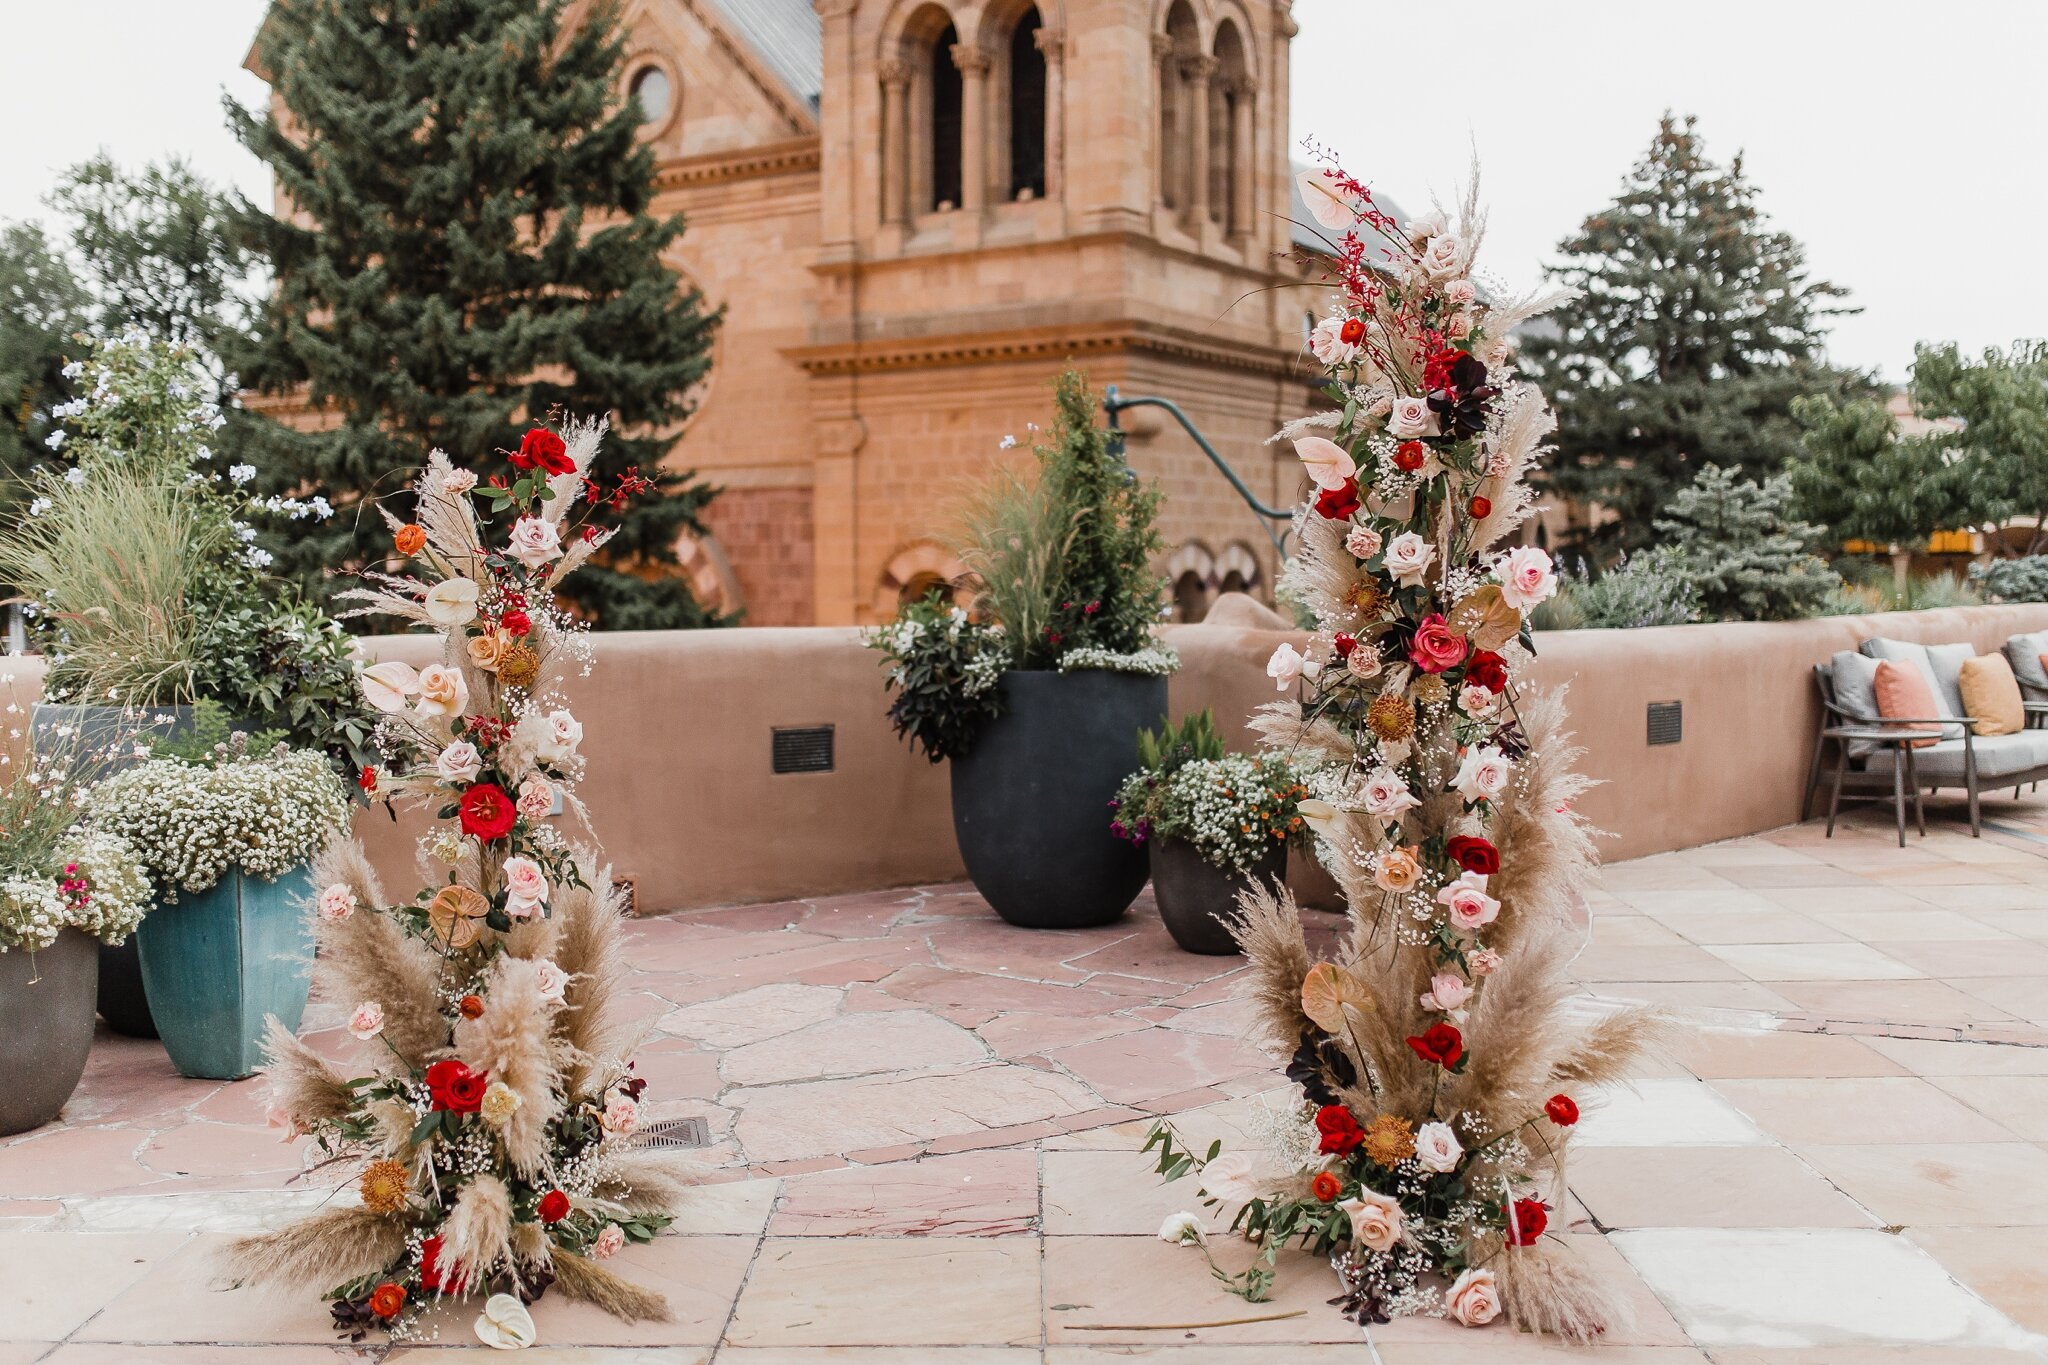 Alicia+lucia+photography+-+albuquerque+wedding+photographer+-+santa+fe+wedding+photography+-+new+mexico+wedding+photographer+-+new+mexico+wedding+-+la+fonda+wedding+-+la+fonda+on+the+plaza+-+santa+fe+wedding+-+brooklyn+bride_0039.jpg